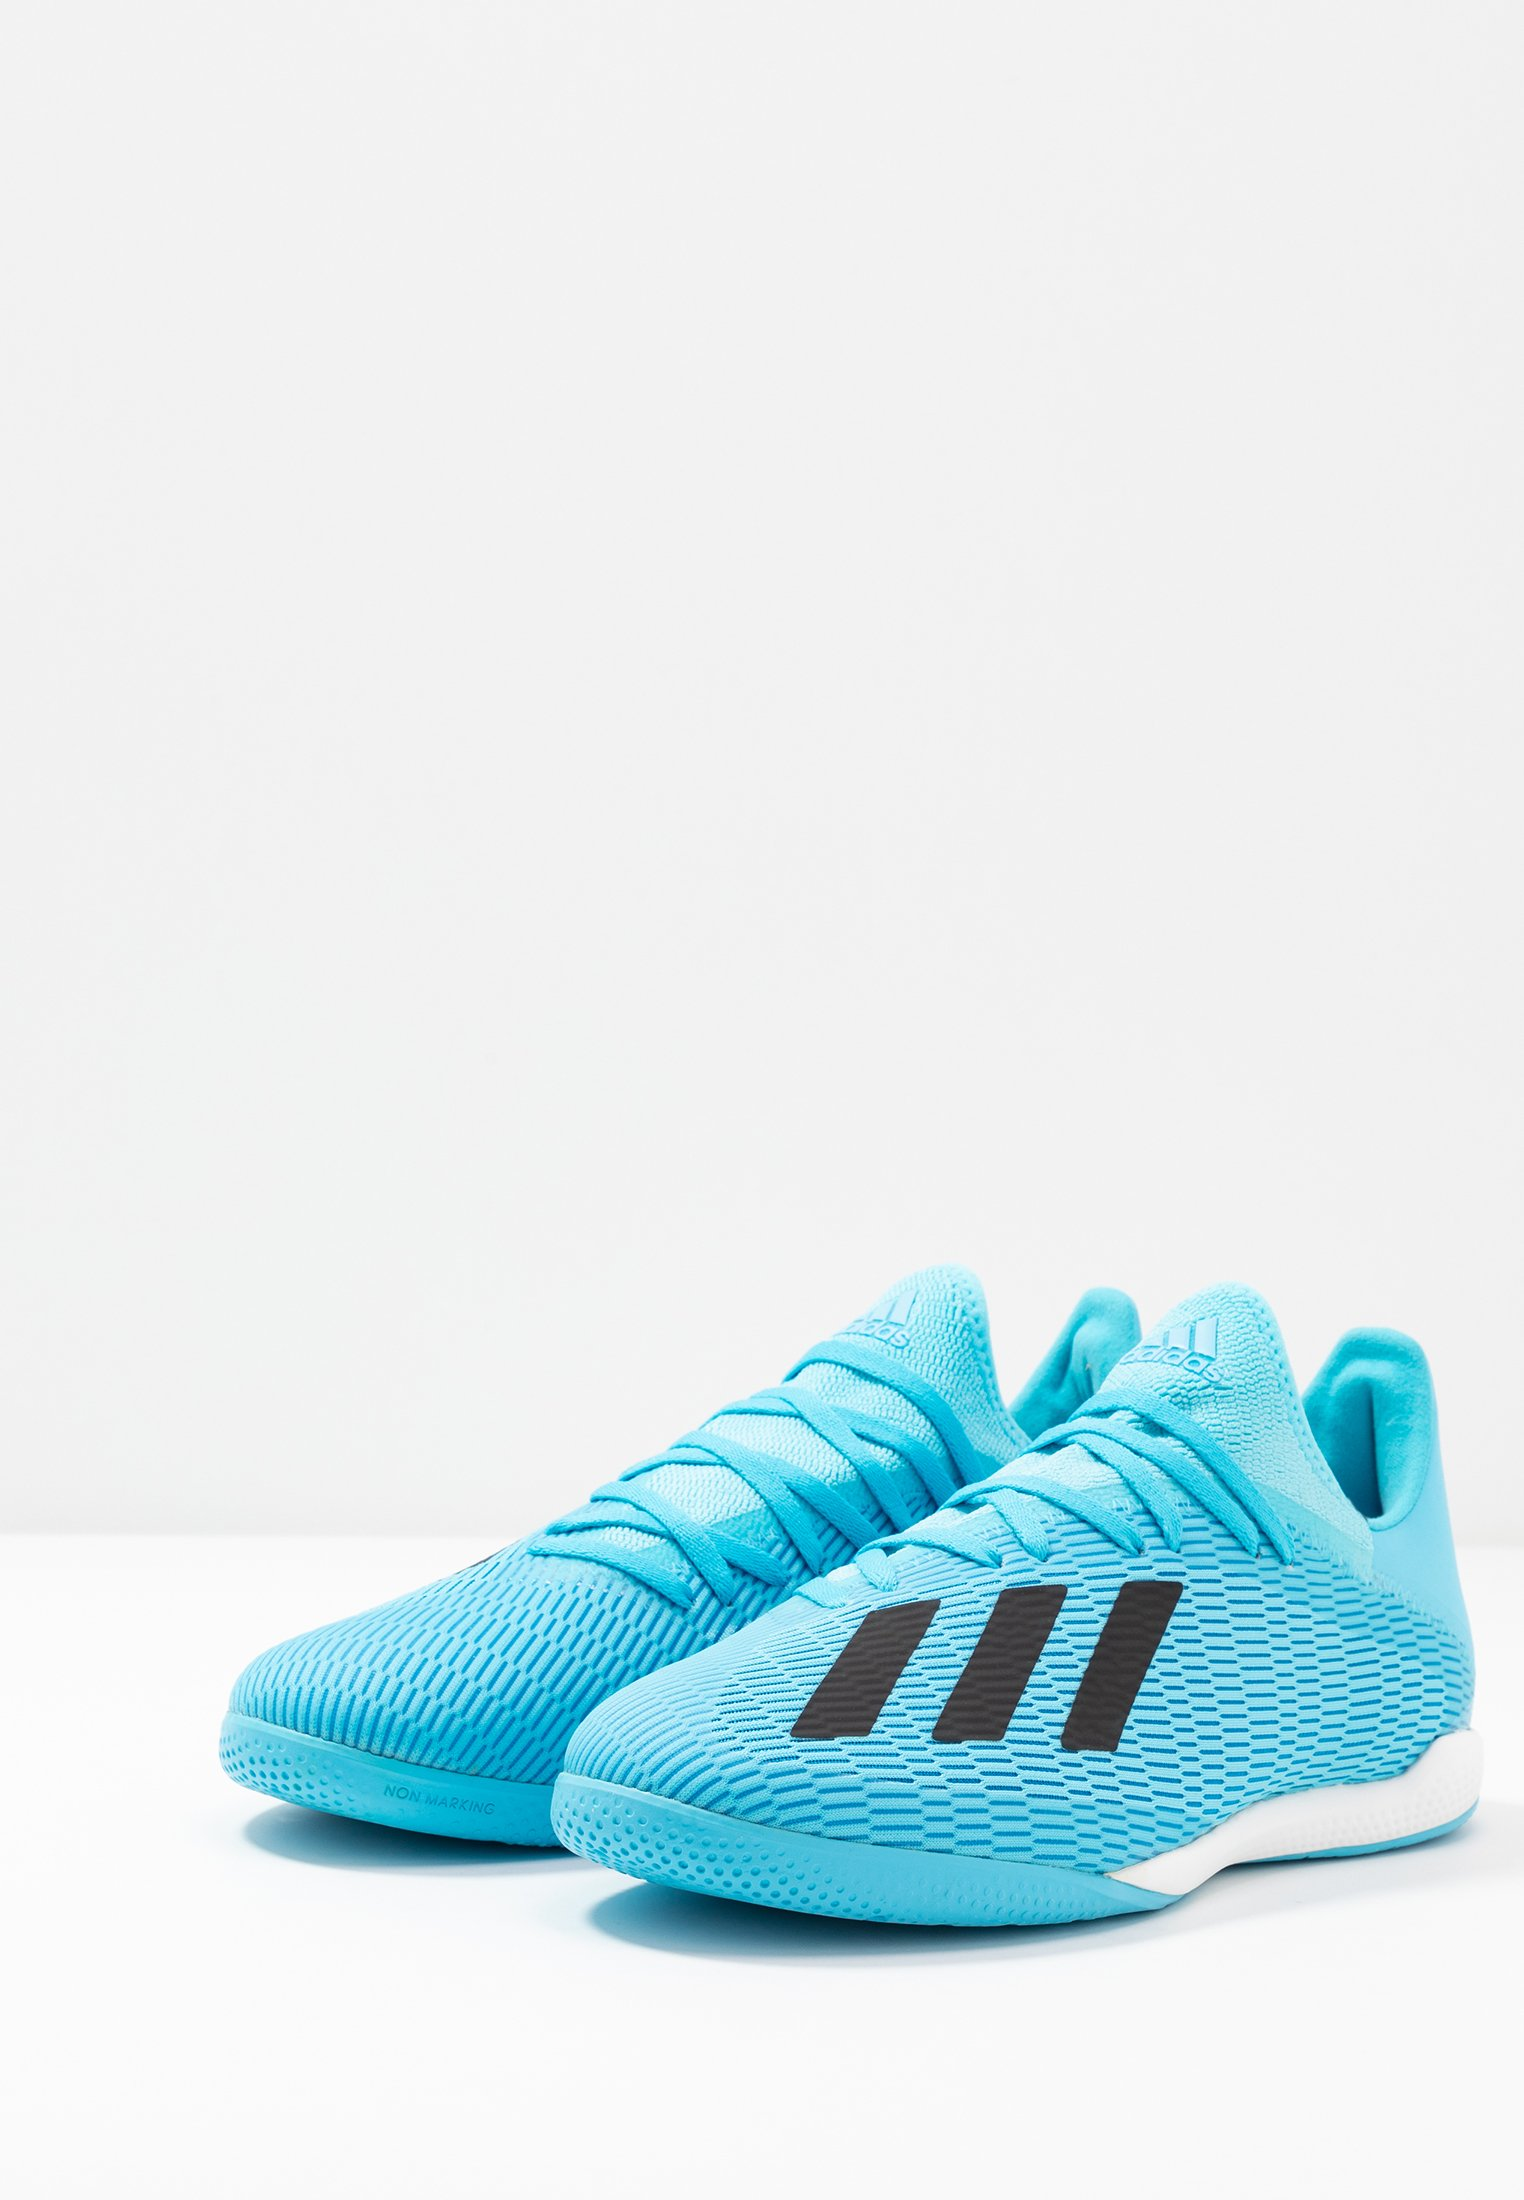 shock X Black Performance Da Pink core Adidas Calcetto InScarpe Cyan 19 Bright 3 ZiTwkOXPu